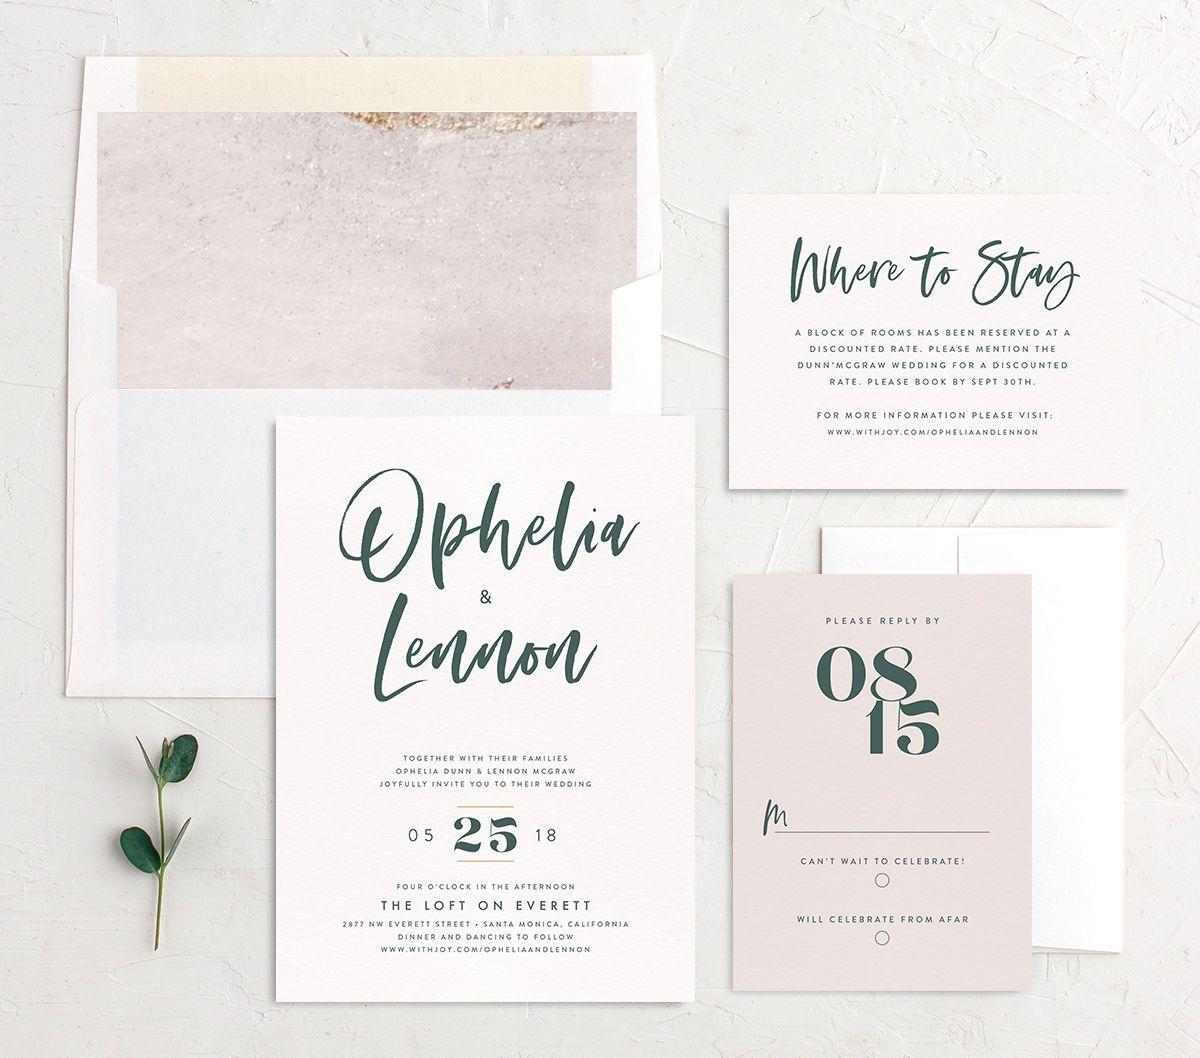 modern luxe wedding invitation stationery suite in teal green